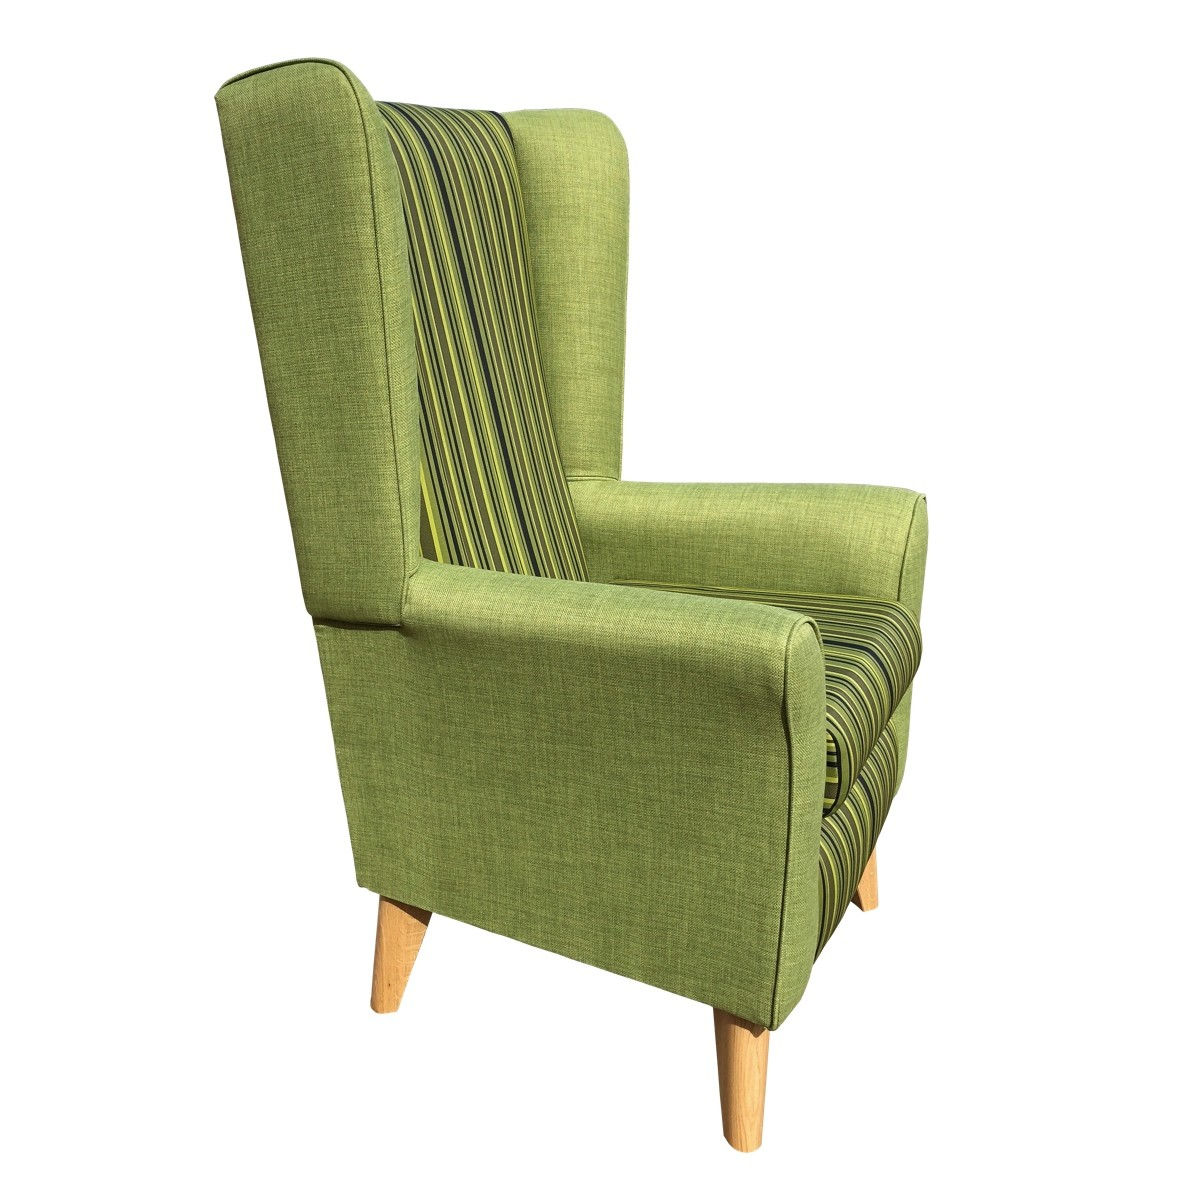 The Monza Extra High Back Wingback Chair